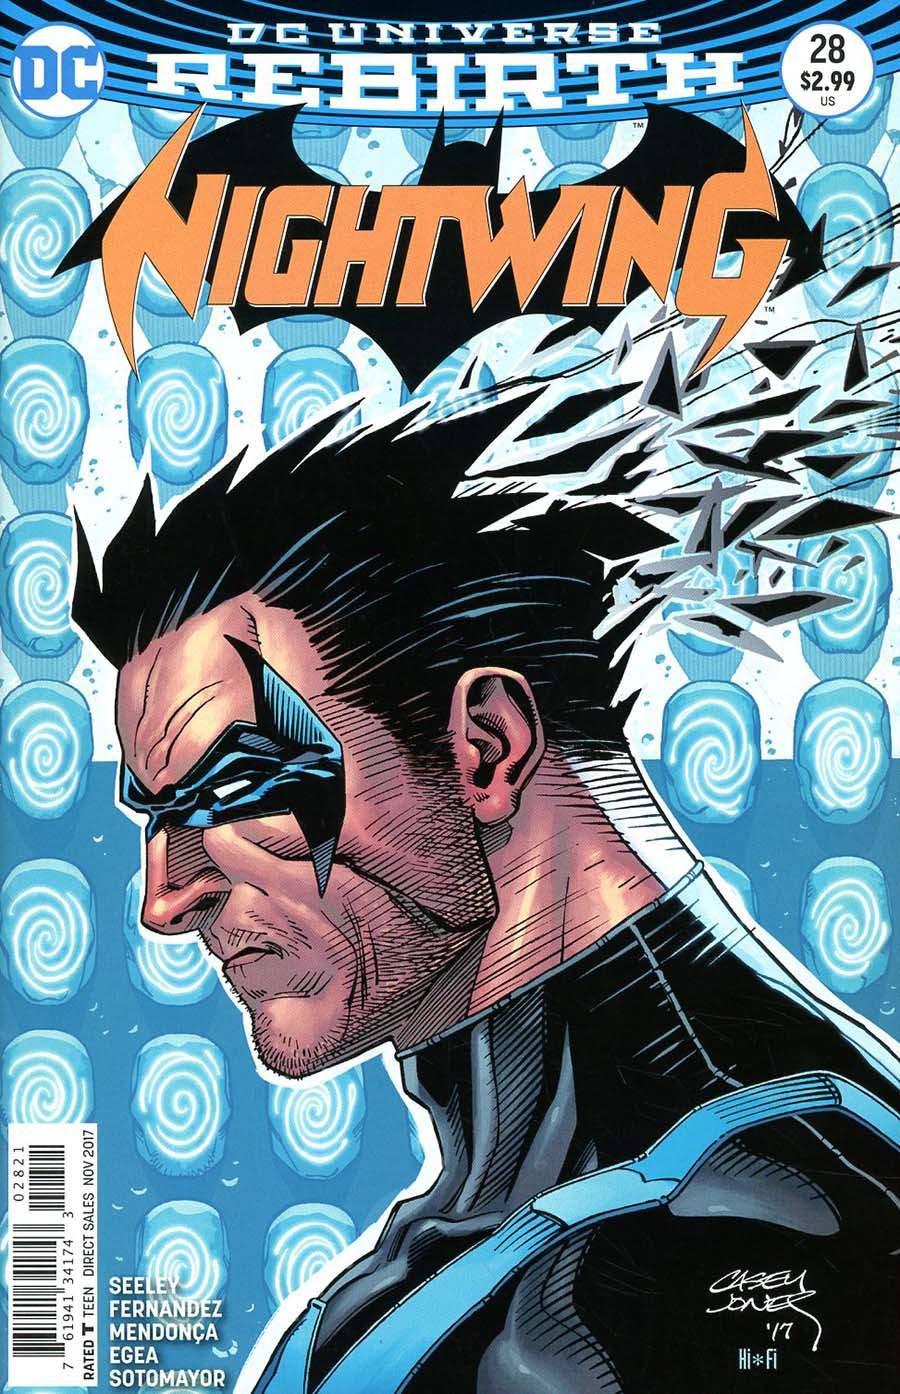 Nightwing Vol 4 #28 Cover B Variant Casey Jones Cover